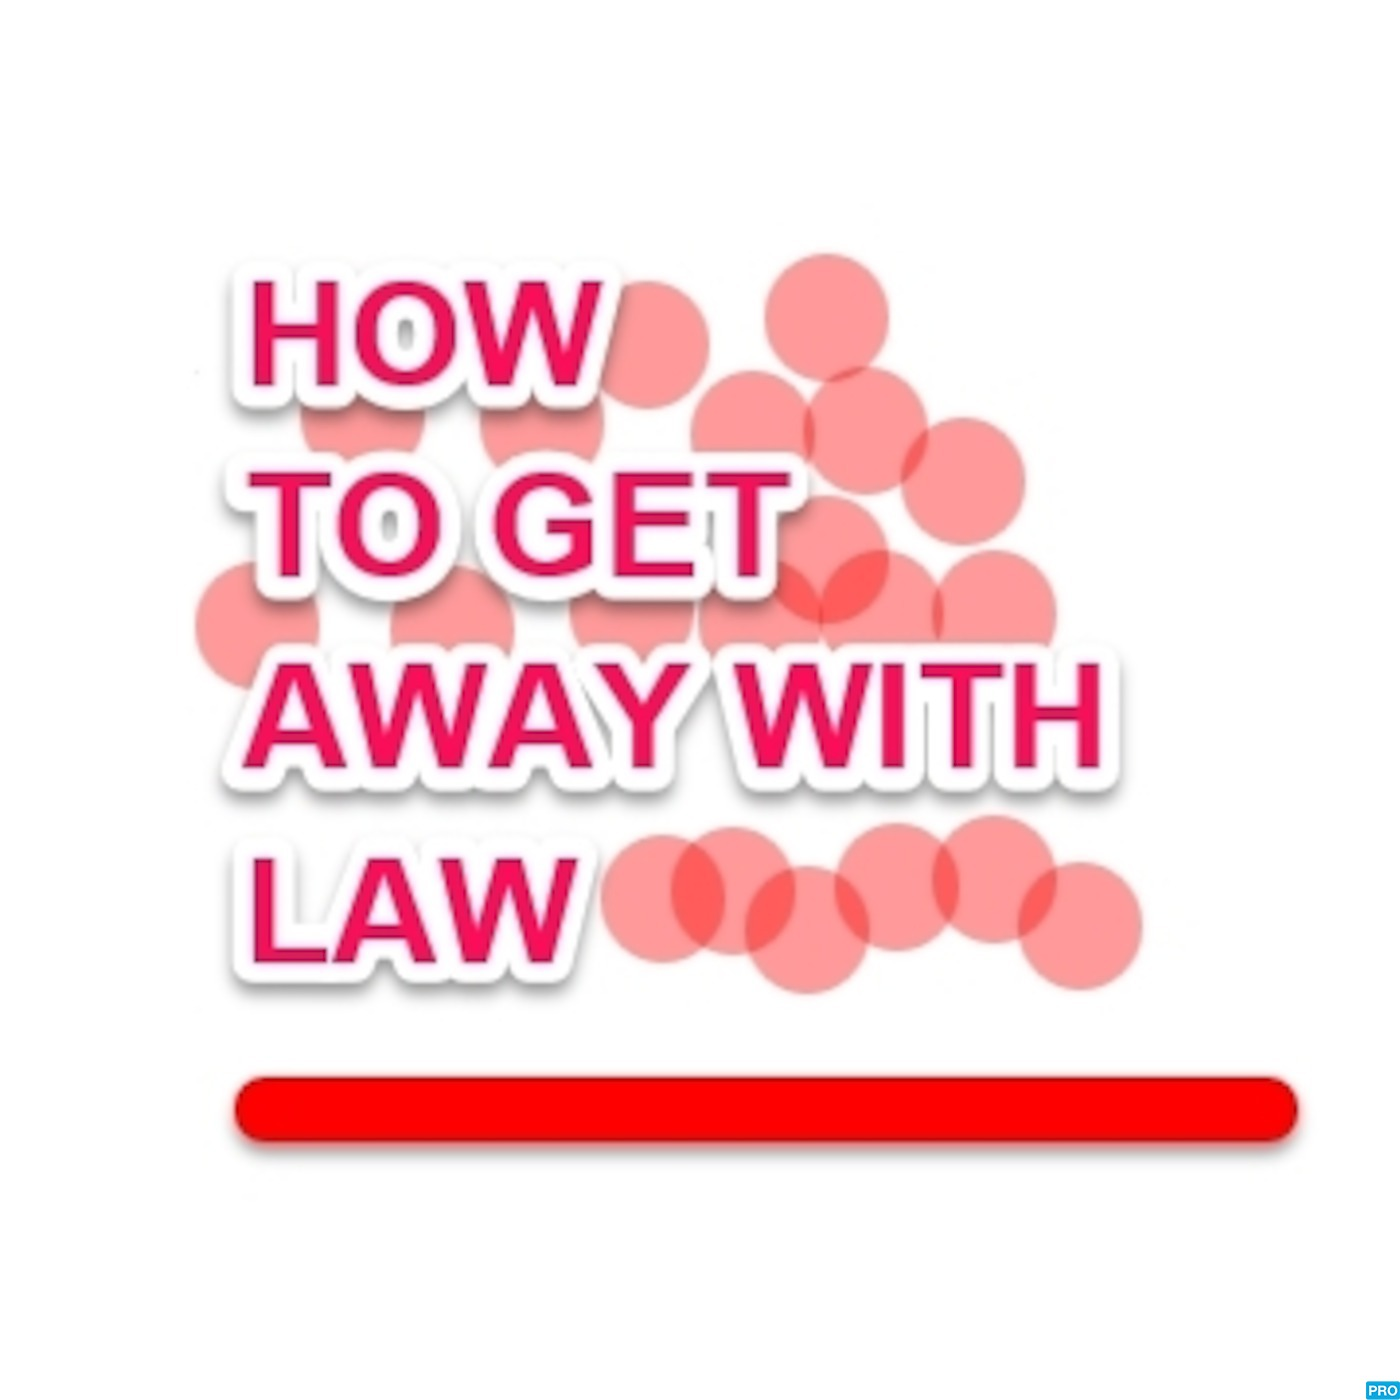 How to Get Away with Law